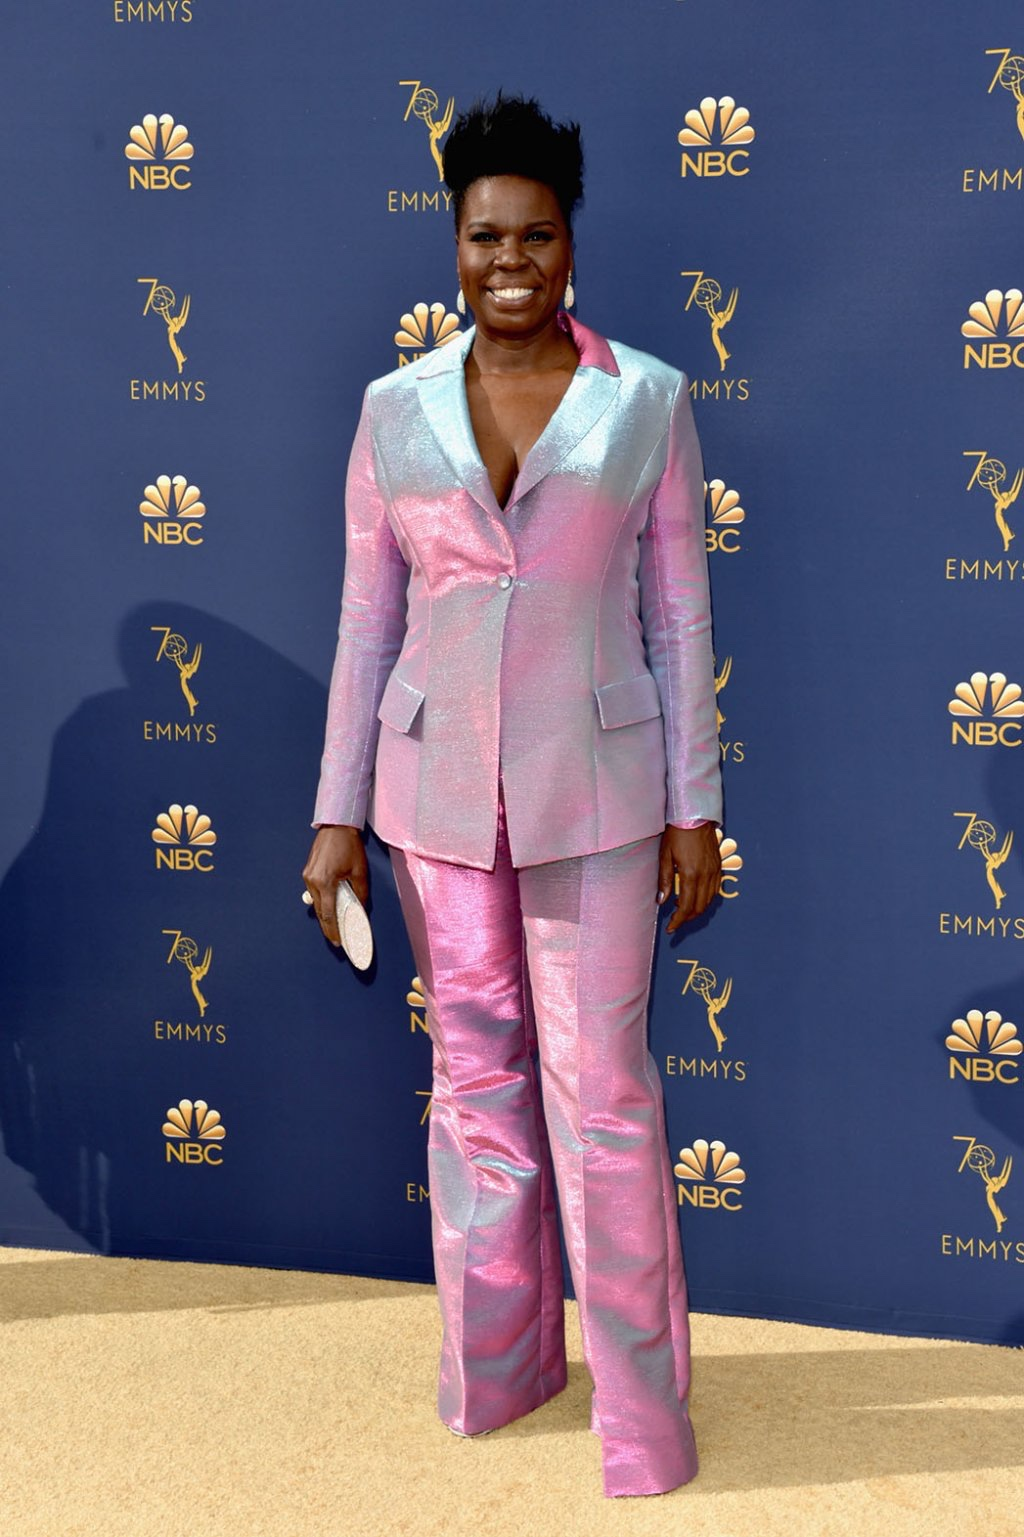 Leslie Jones in Christian Siriano, 70th Annual Primetime Emmy Awards, Betty White, Emmys 2018, Fashion, Featured, Glenn Weiss, Hannah Gadsby, highlights, Jav Svendsen, Online Exclusive, Style, The Marvellous Mrs. Maisel, top moments, We solved it, Diversity